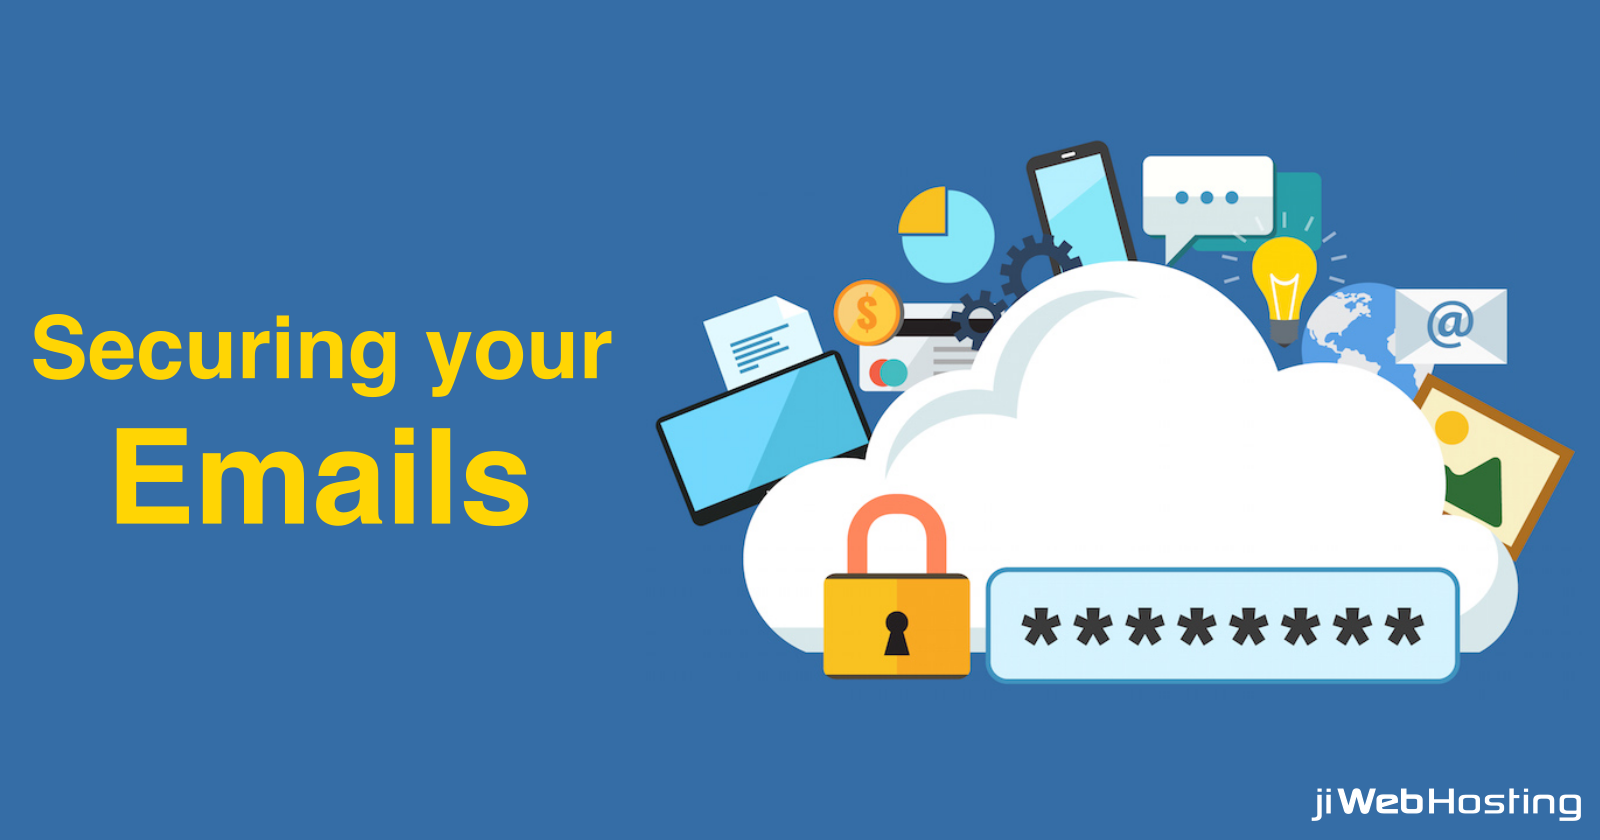 How to Secure your eMails?